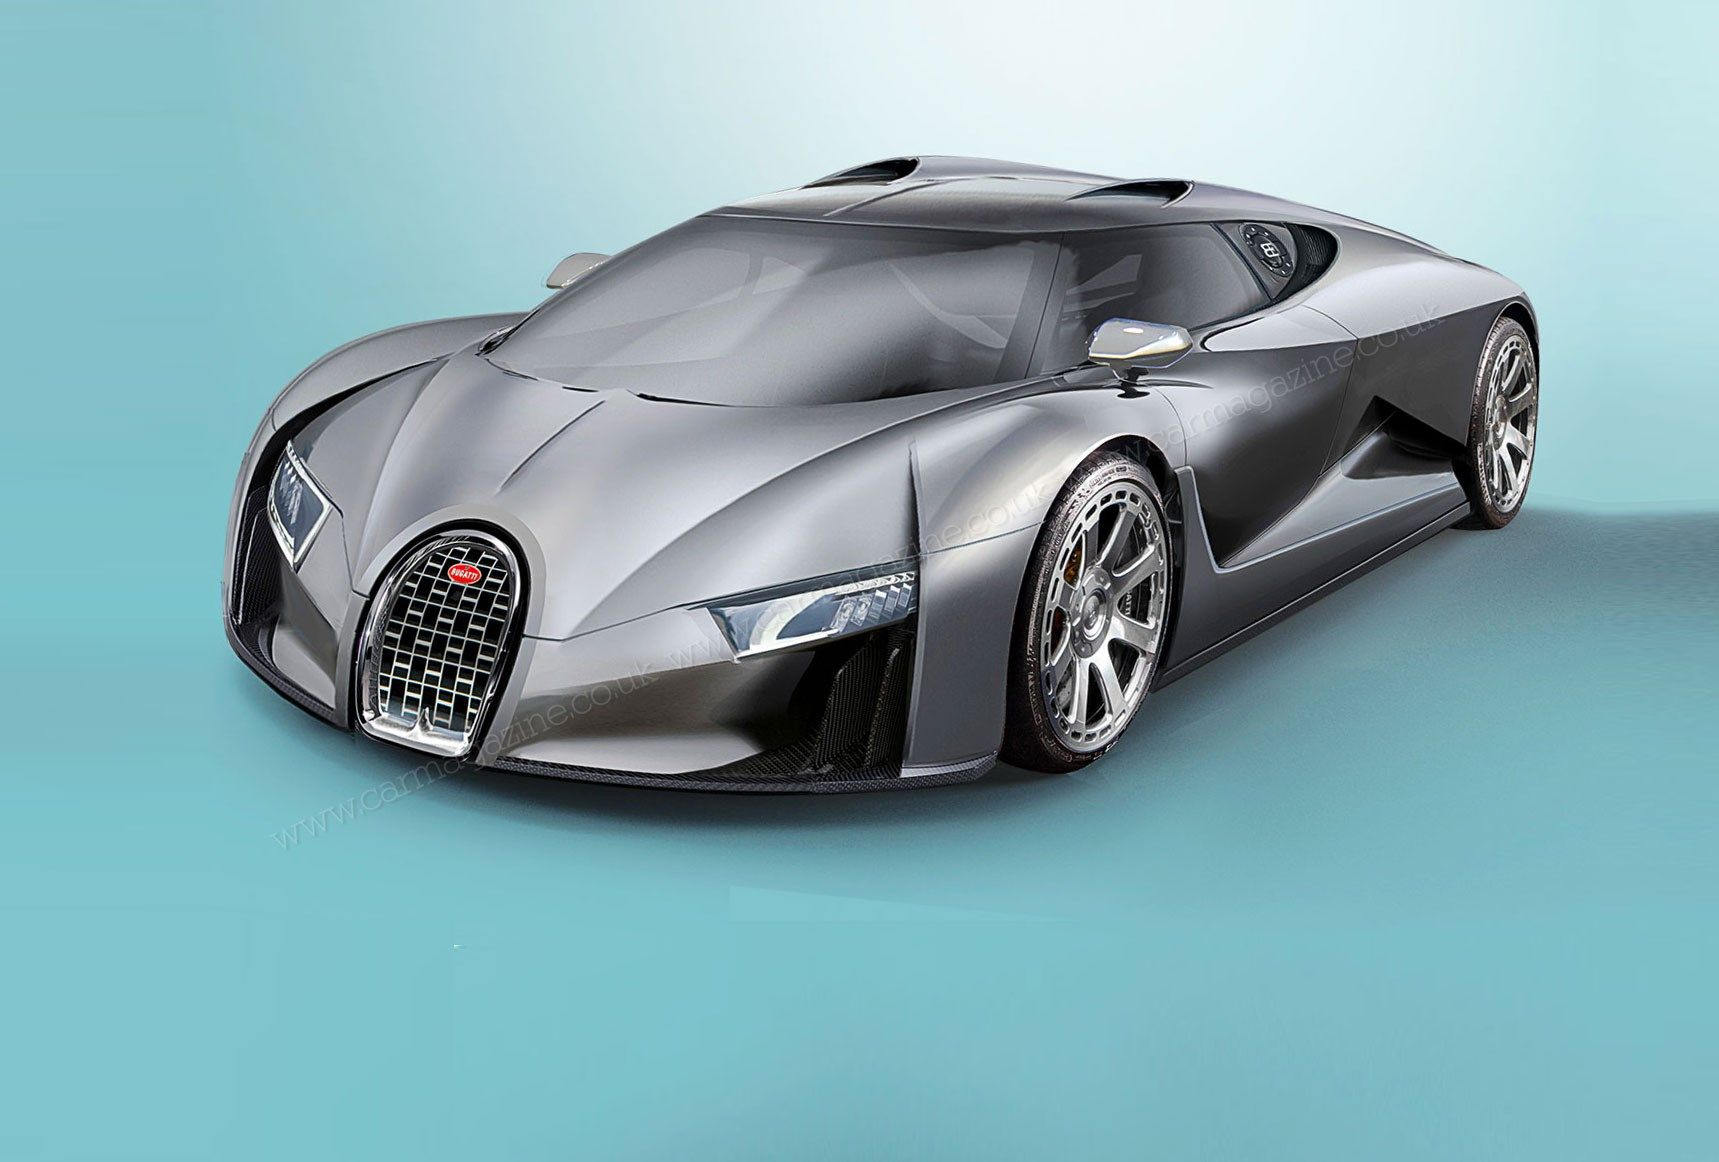 8f88a9fc014e6ebde9b2696cf44caf8a Cozy Bugatti Veyron and Chiron Difference Cars Trend